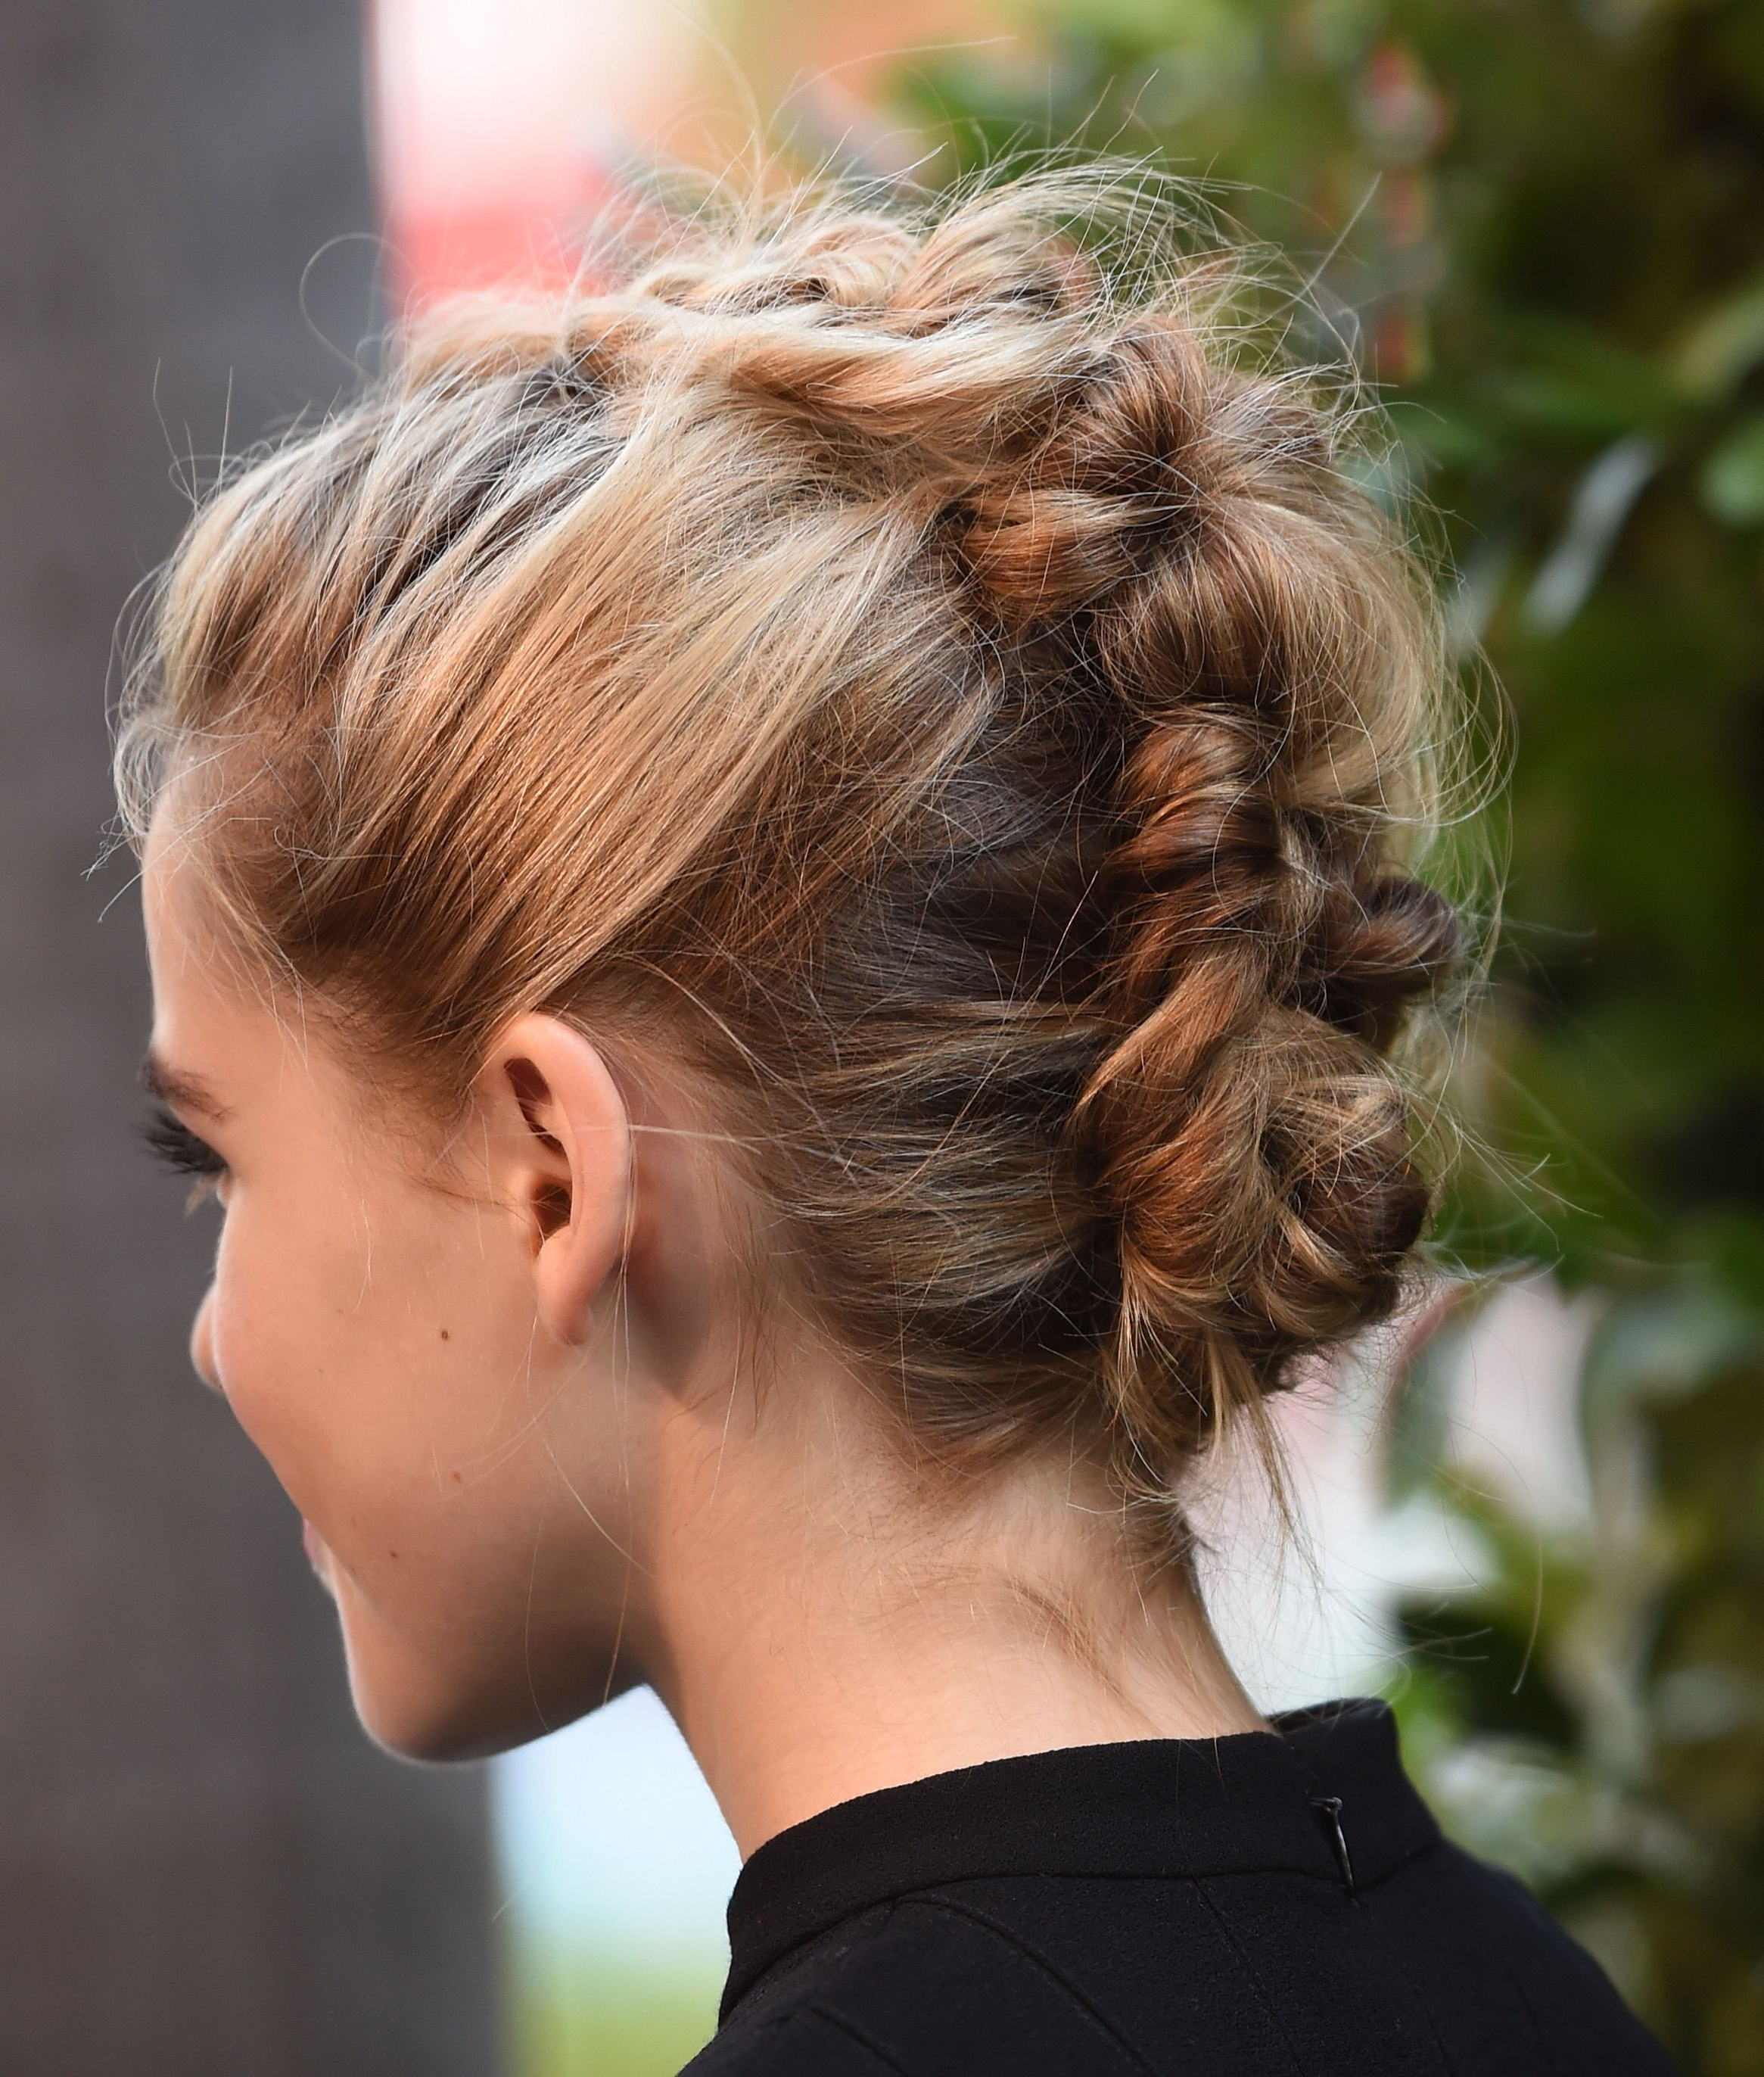 Most Popular Messy Braided Faux Hawk Hairstyles Pertaining To From Jessica To Kristen: 5 Killer Celebrity Beauty Looks (View 19 of 20)